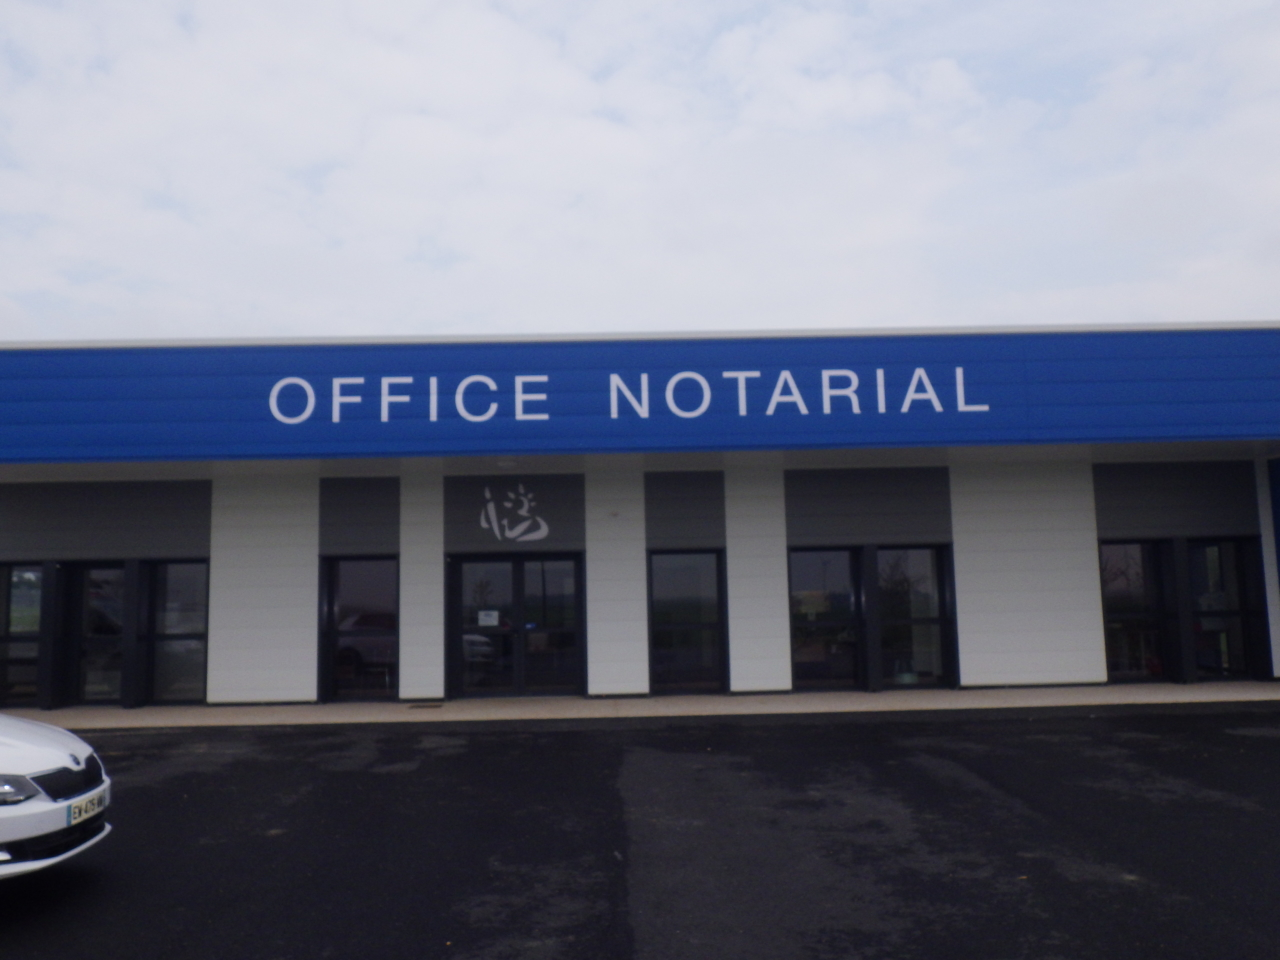 Office notarial Simon Guiset